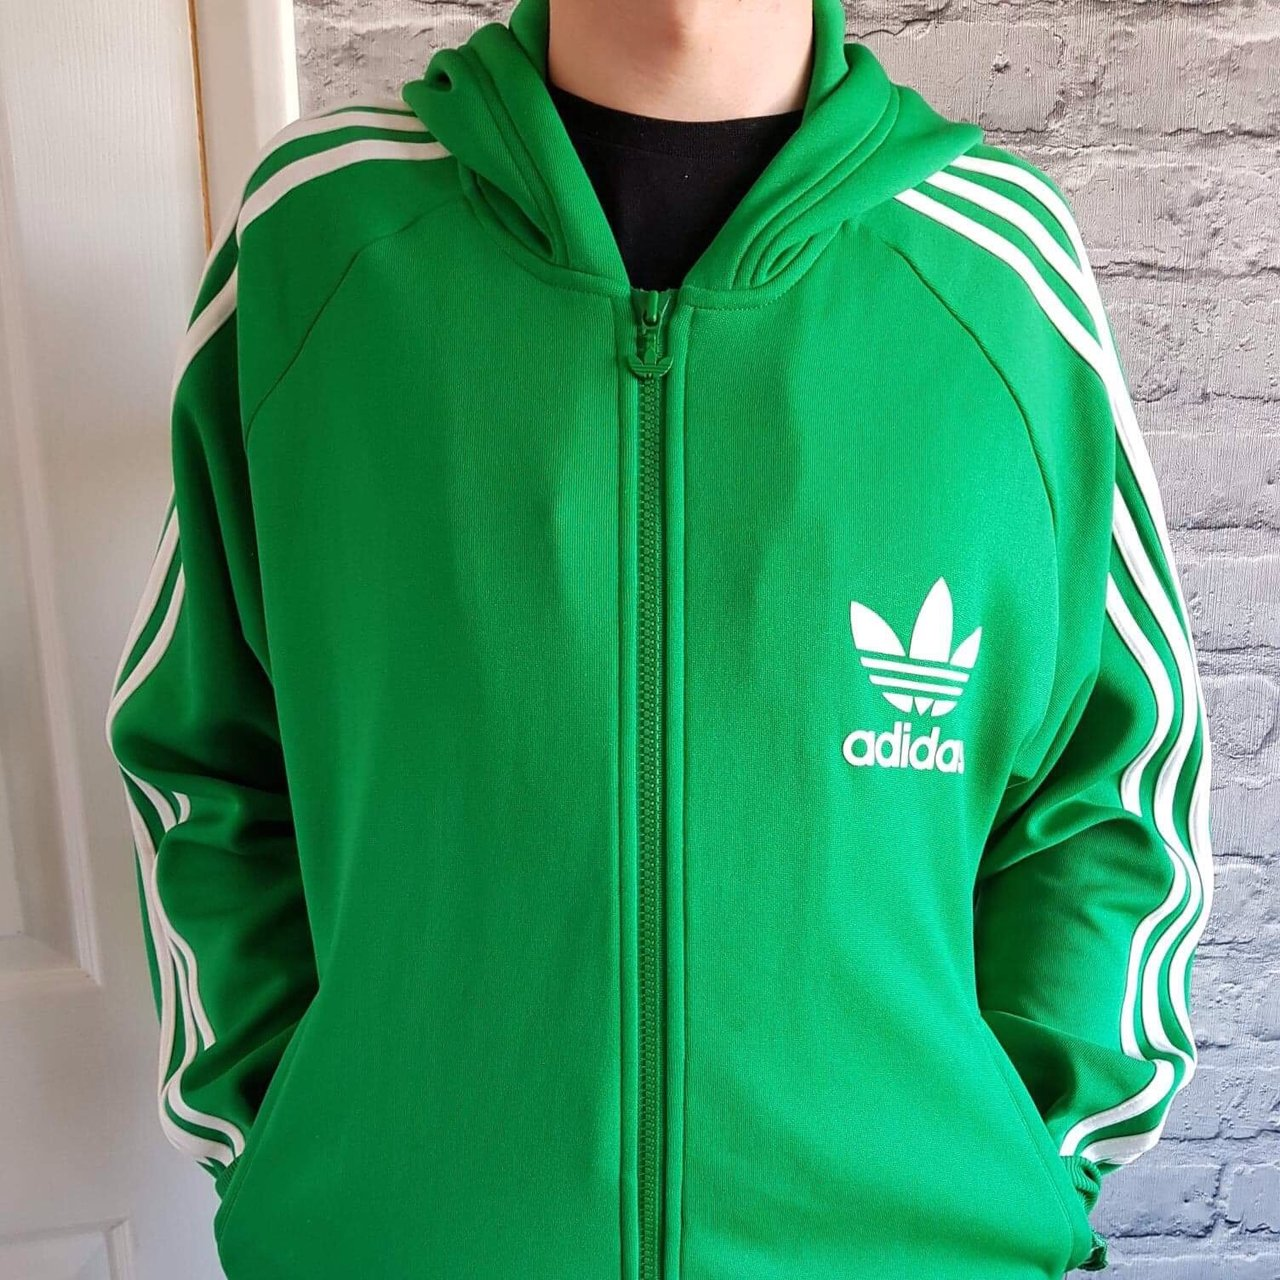 ADIDAS Green and White 3 Stripes Zip Hoodie Jacket Size Wear - Depop 91d2546b221b